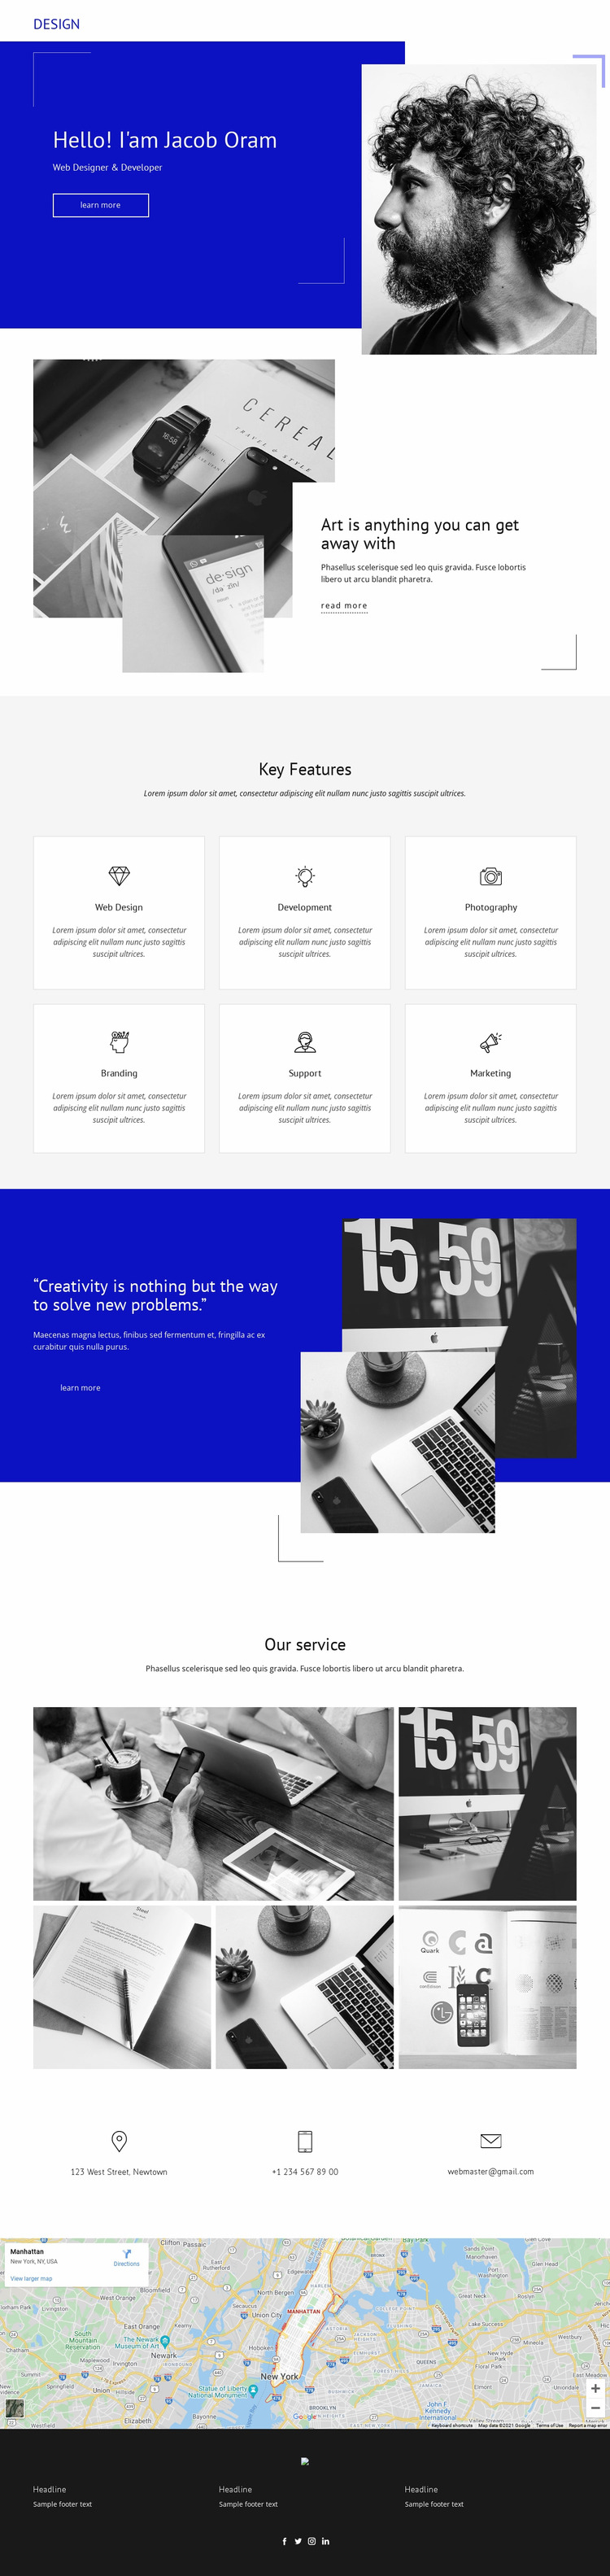 Jacob Oram Portfolio Html Website Builder